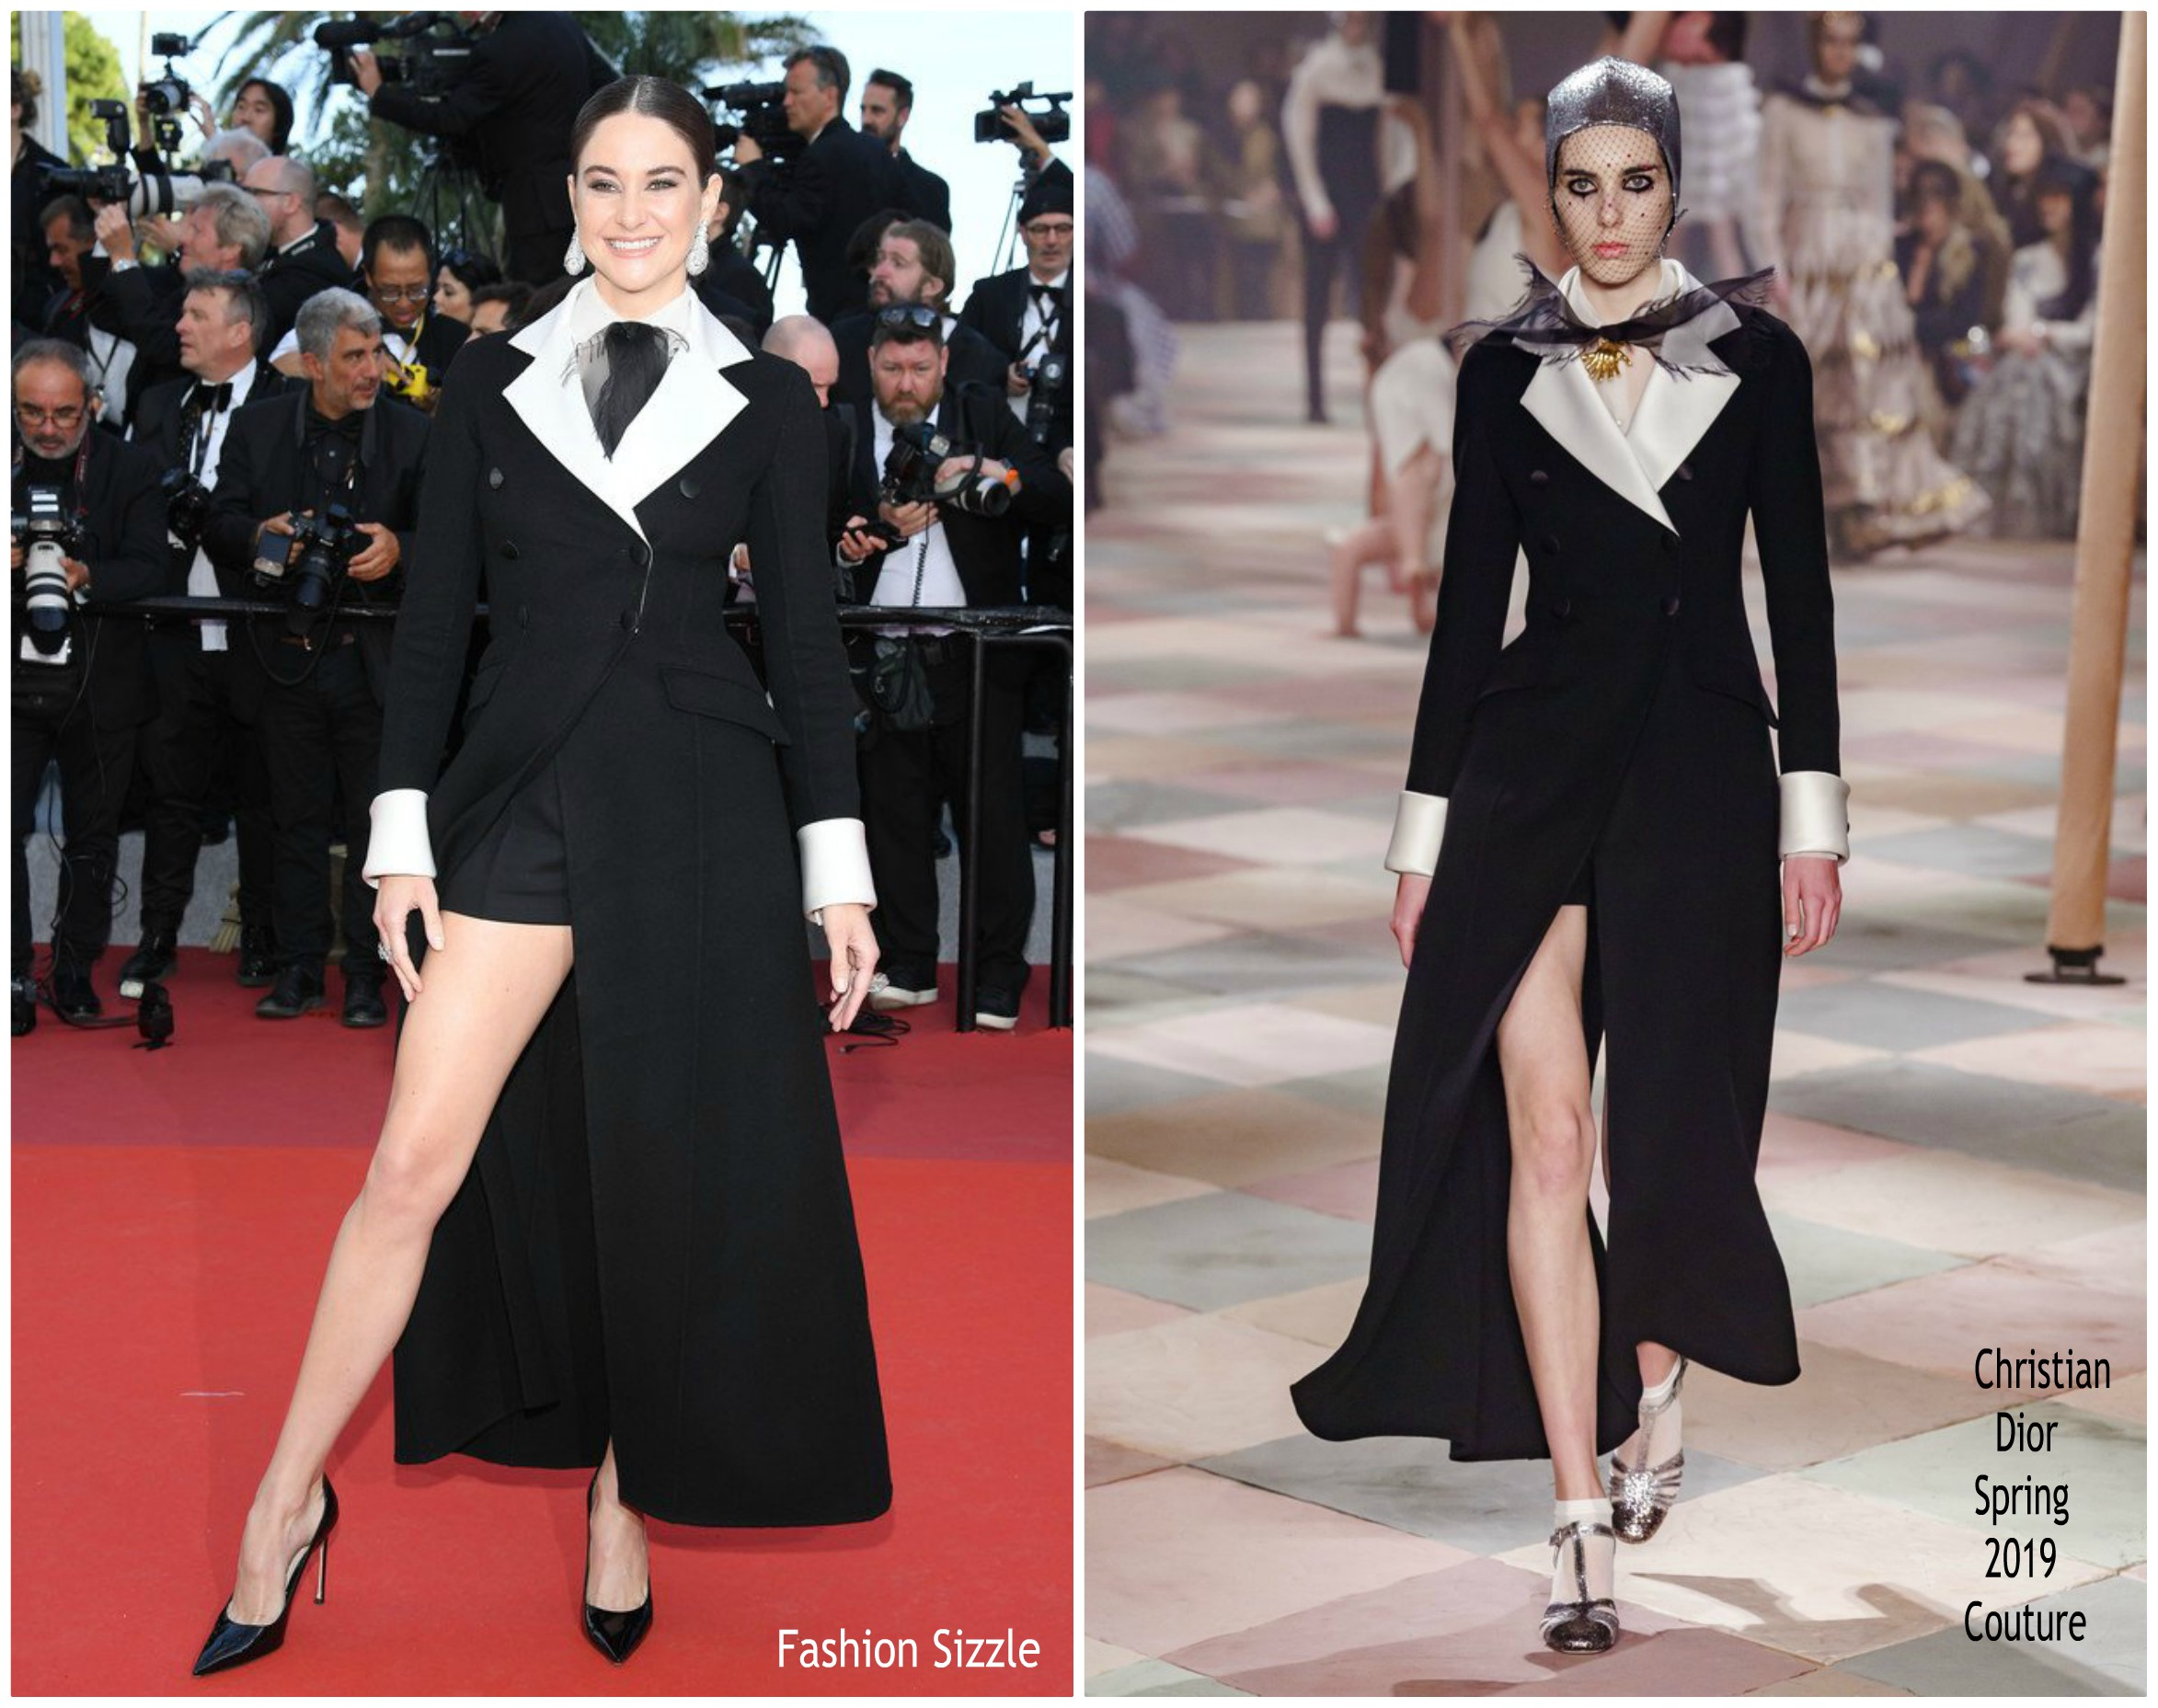 shailene-woodley-in-christian-dior-couture-rocketman-cannes-film-festival-premiere